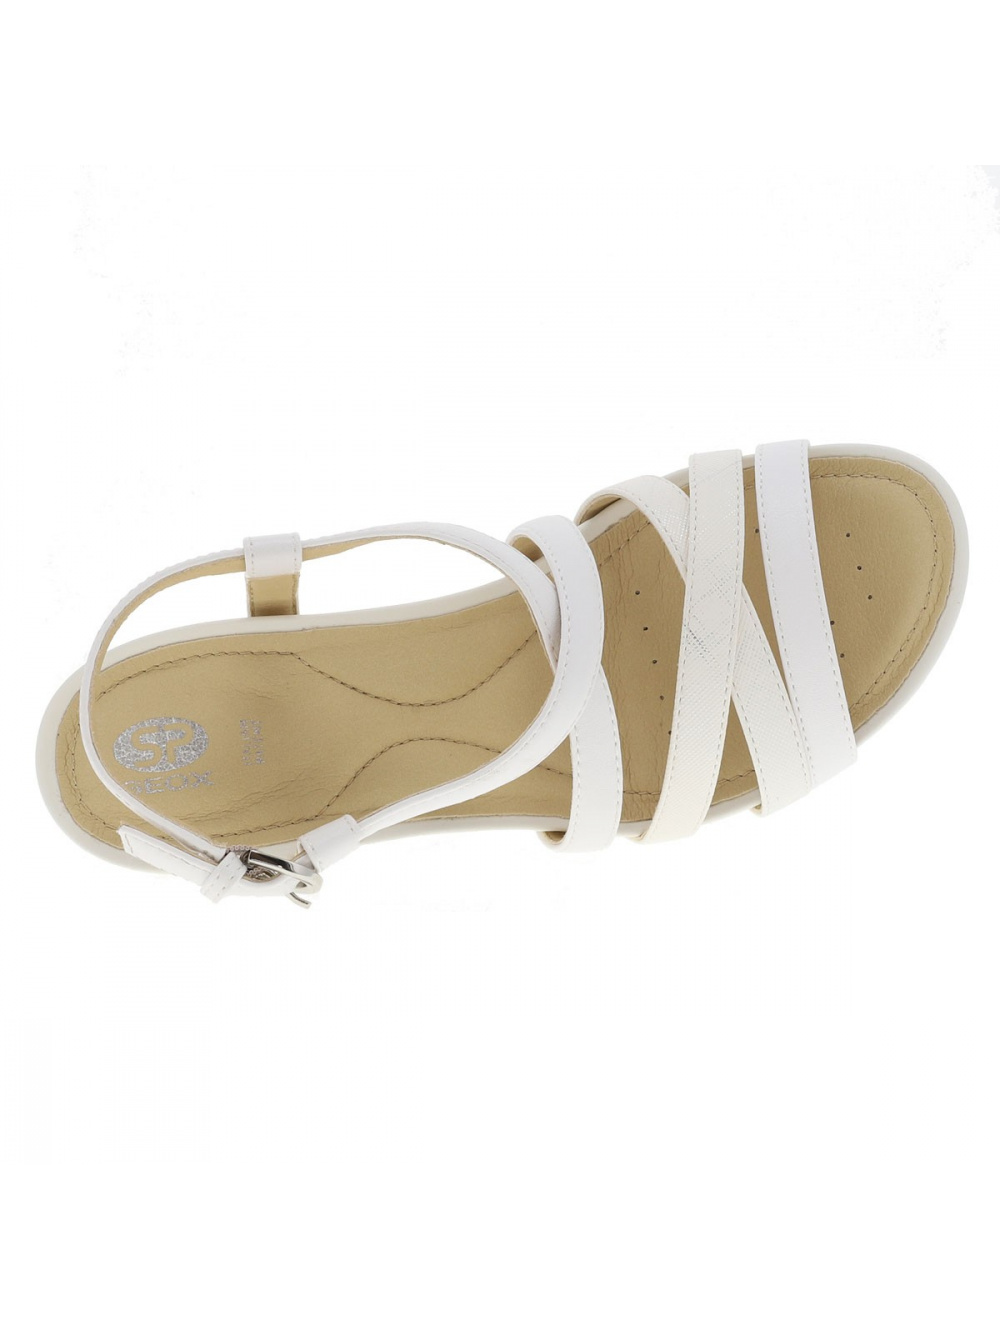 Chaussures New Rorie nu-pieds femme blanc GEOX